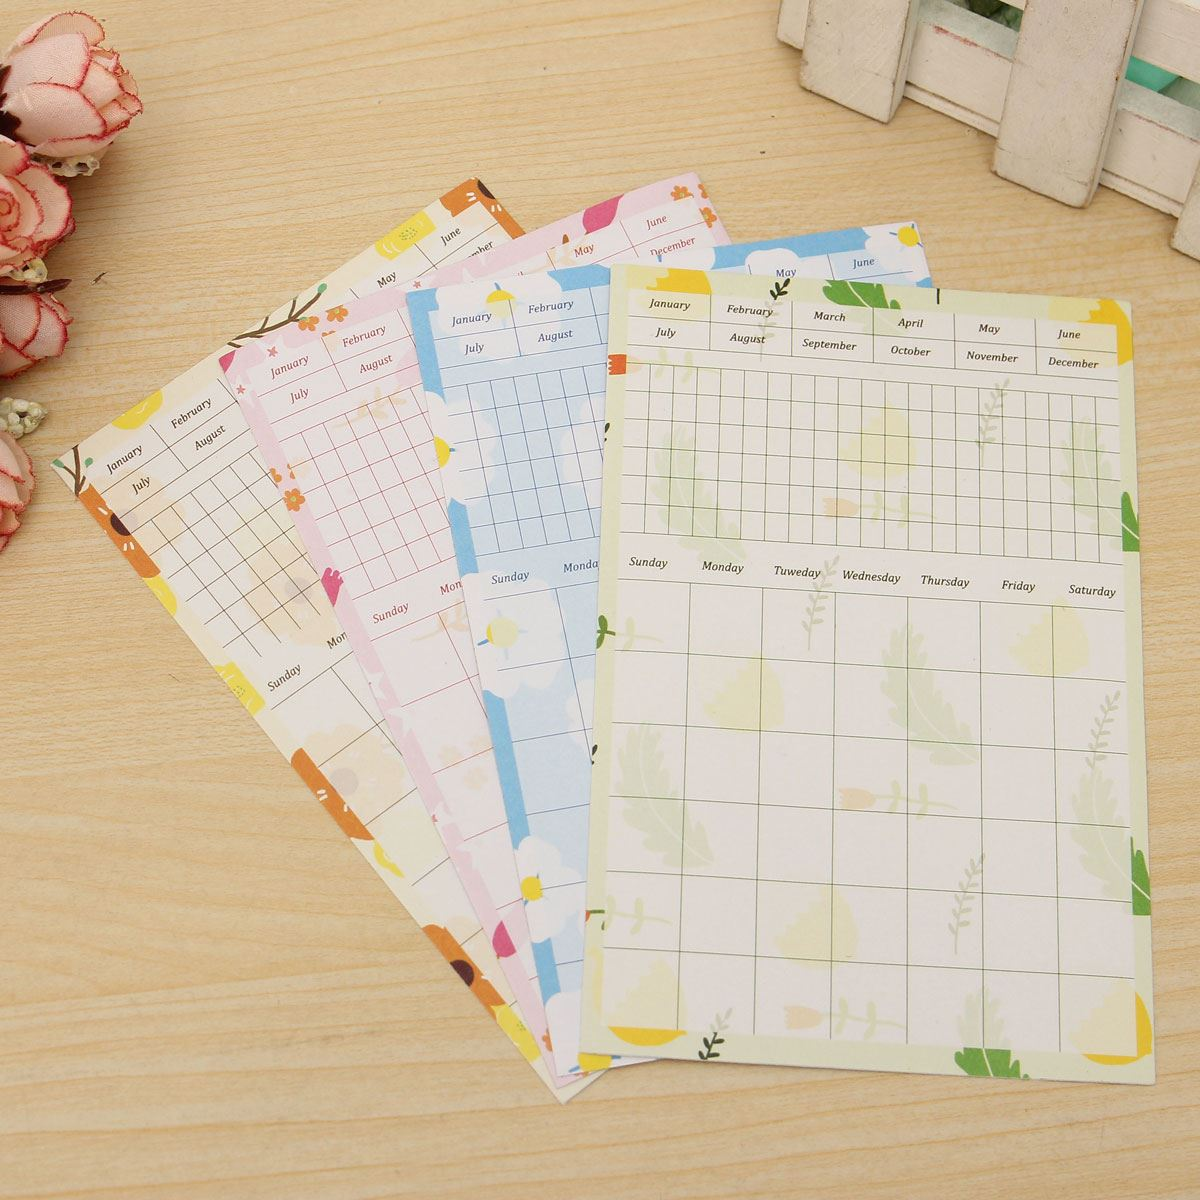 13pcs/pack Funny Style Cute Daily Planner Sticker Sticky Notes Memo Pad Schedule Organizer Check List School Office Supplies(China (Mainland))